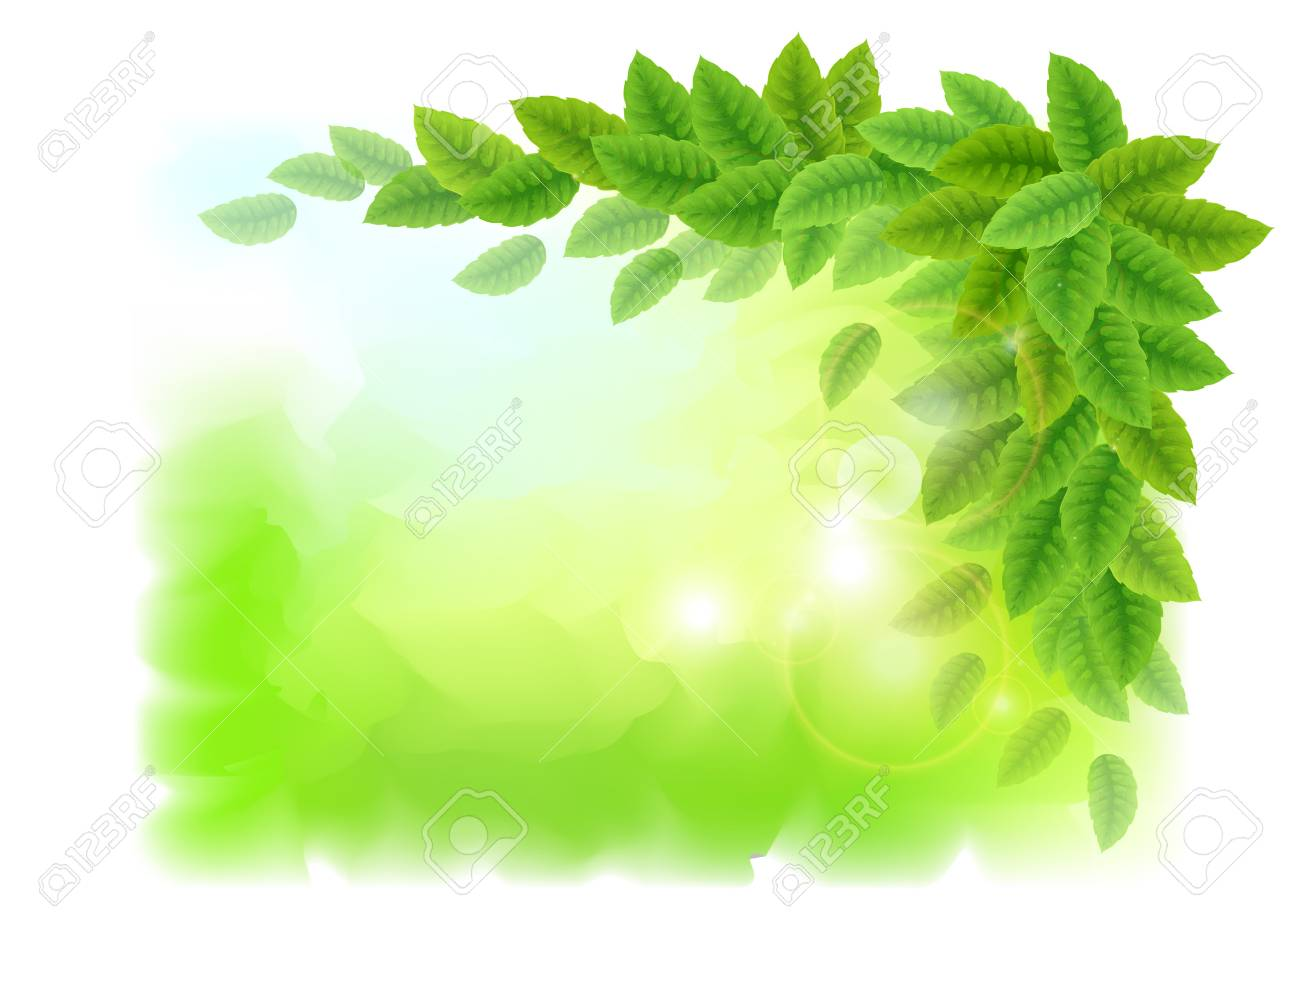 Sunny background with green leaves  Vector illustration Stock Vector - 18920101